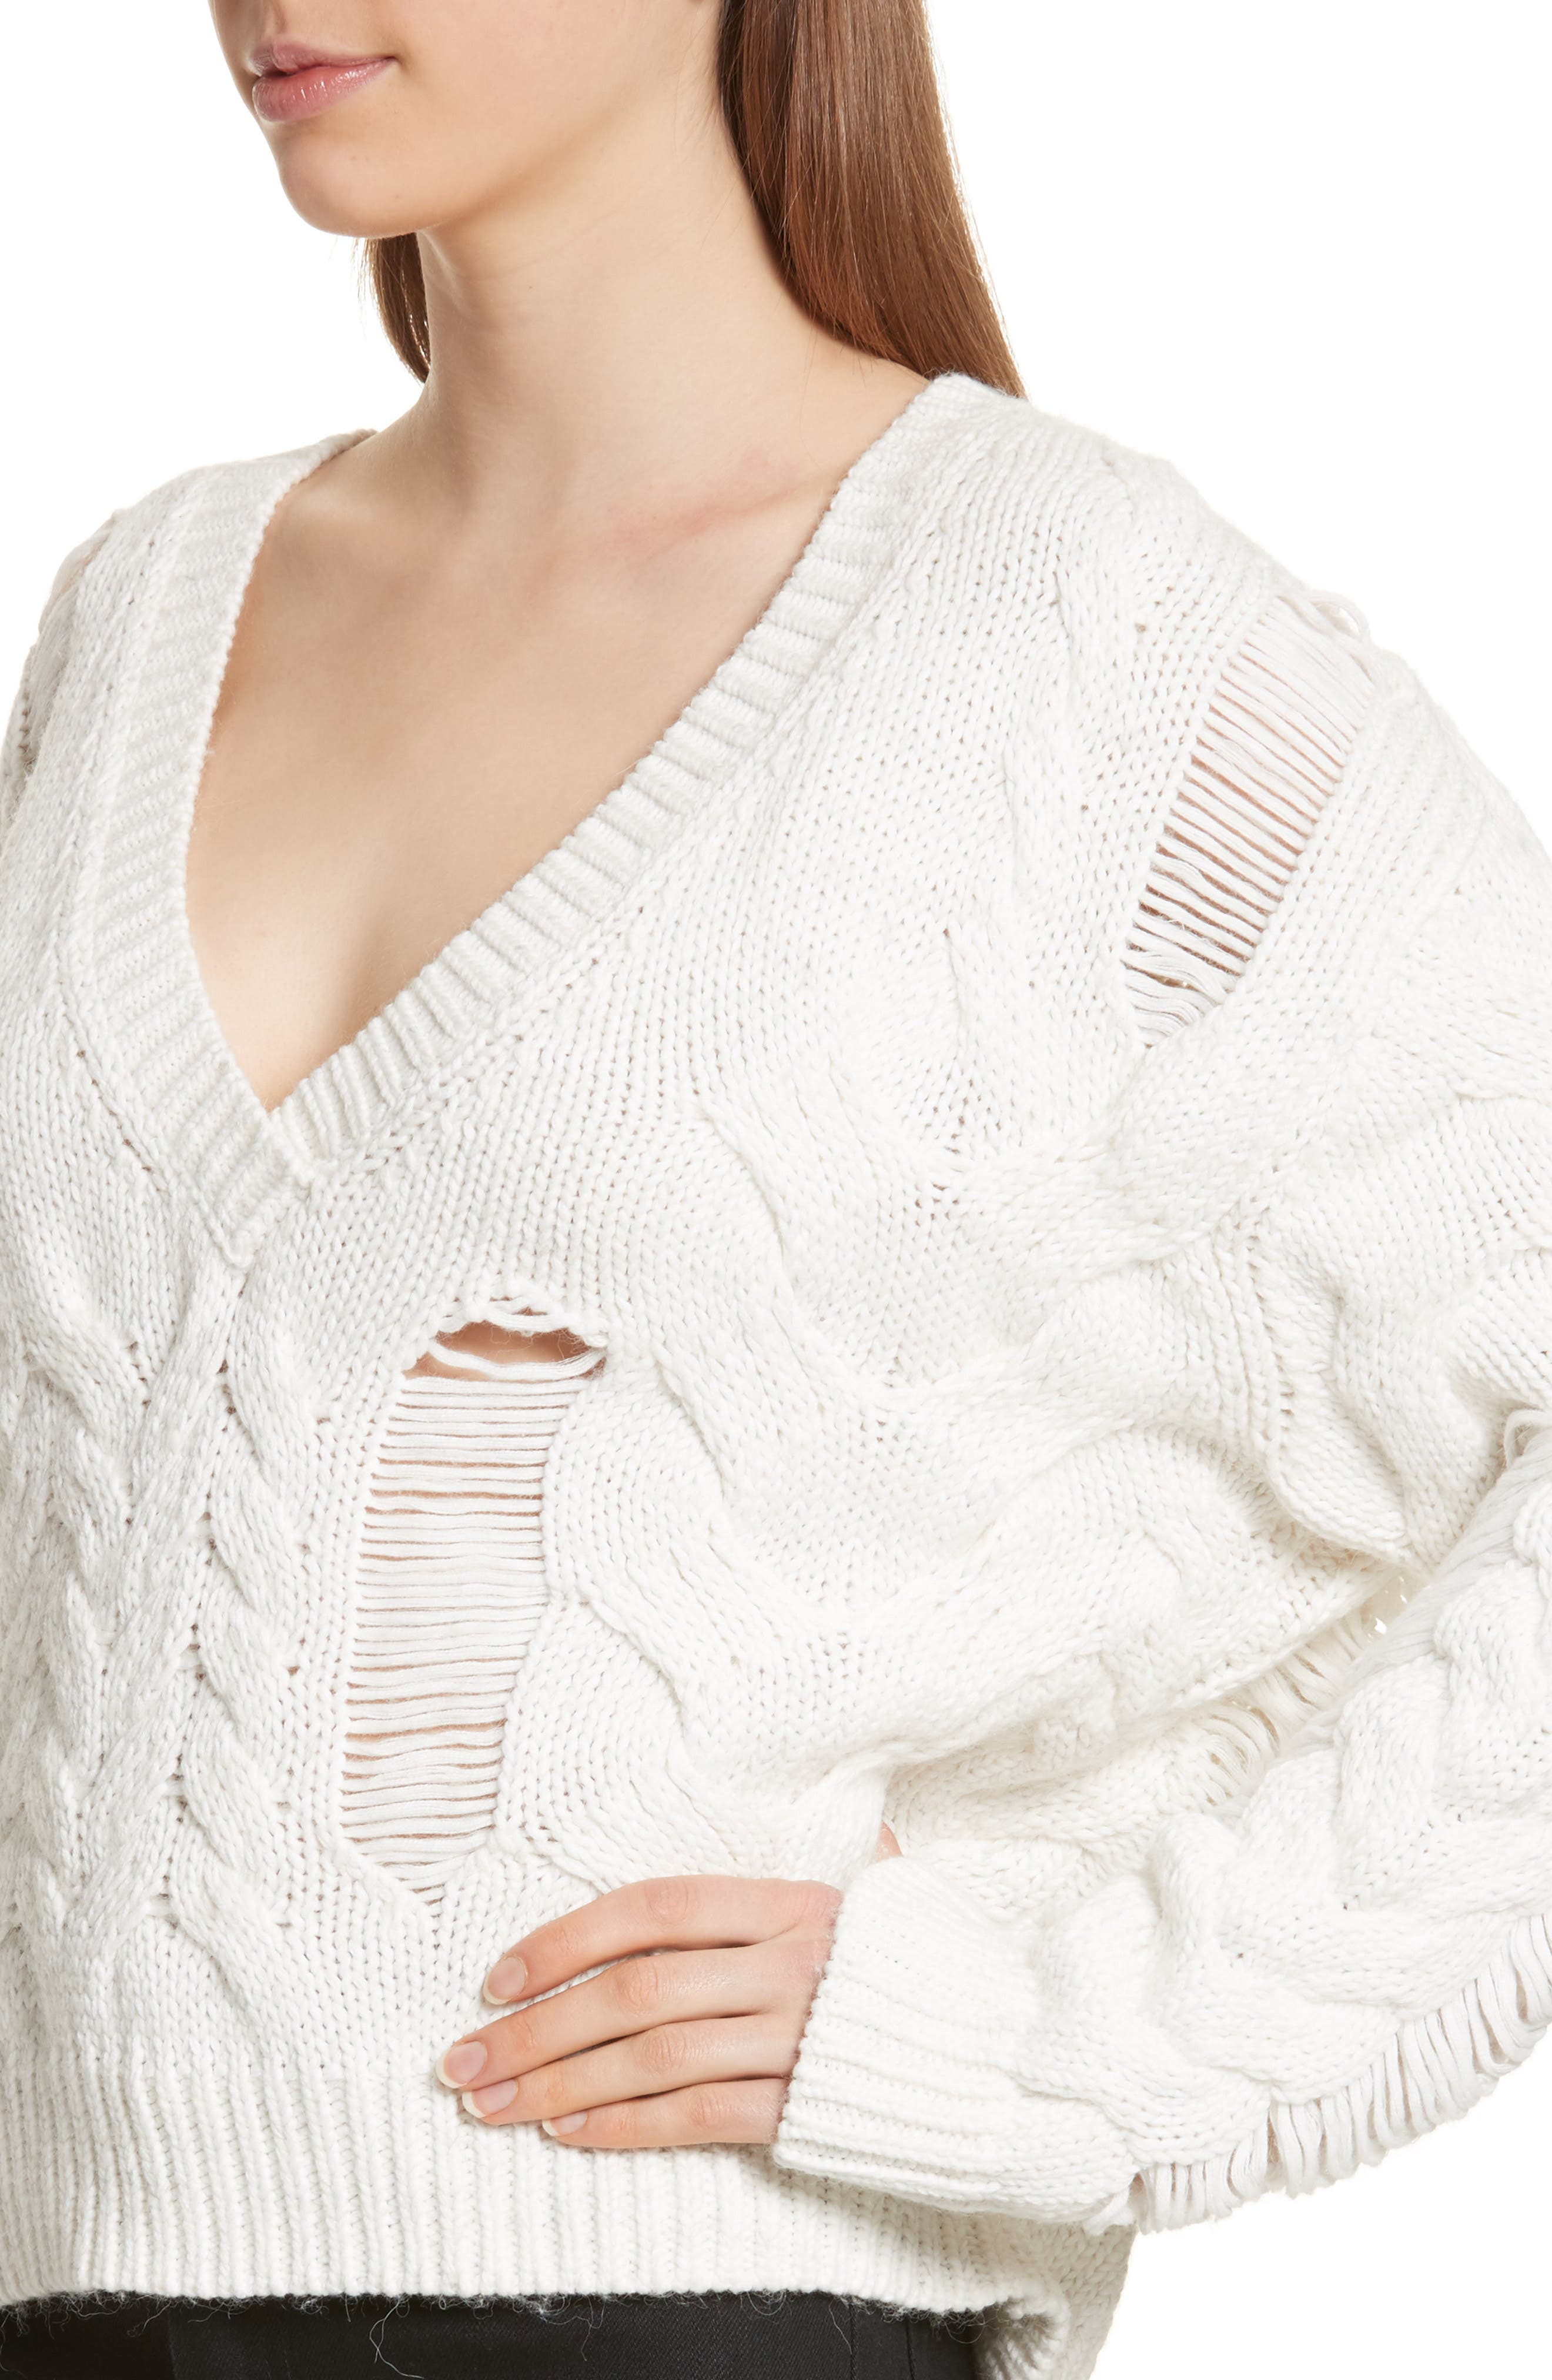 Fighla Distressed Sweater,                             Alternate thumbnail 4, color,                             010